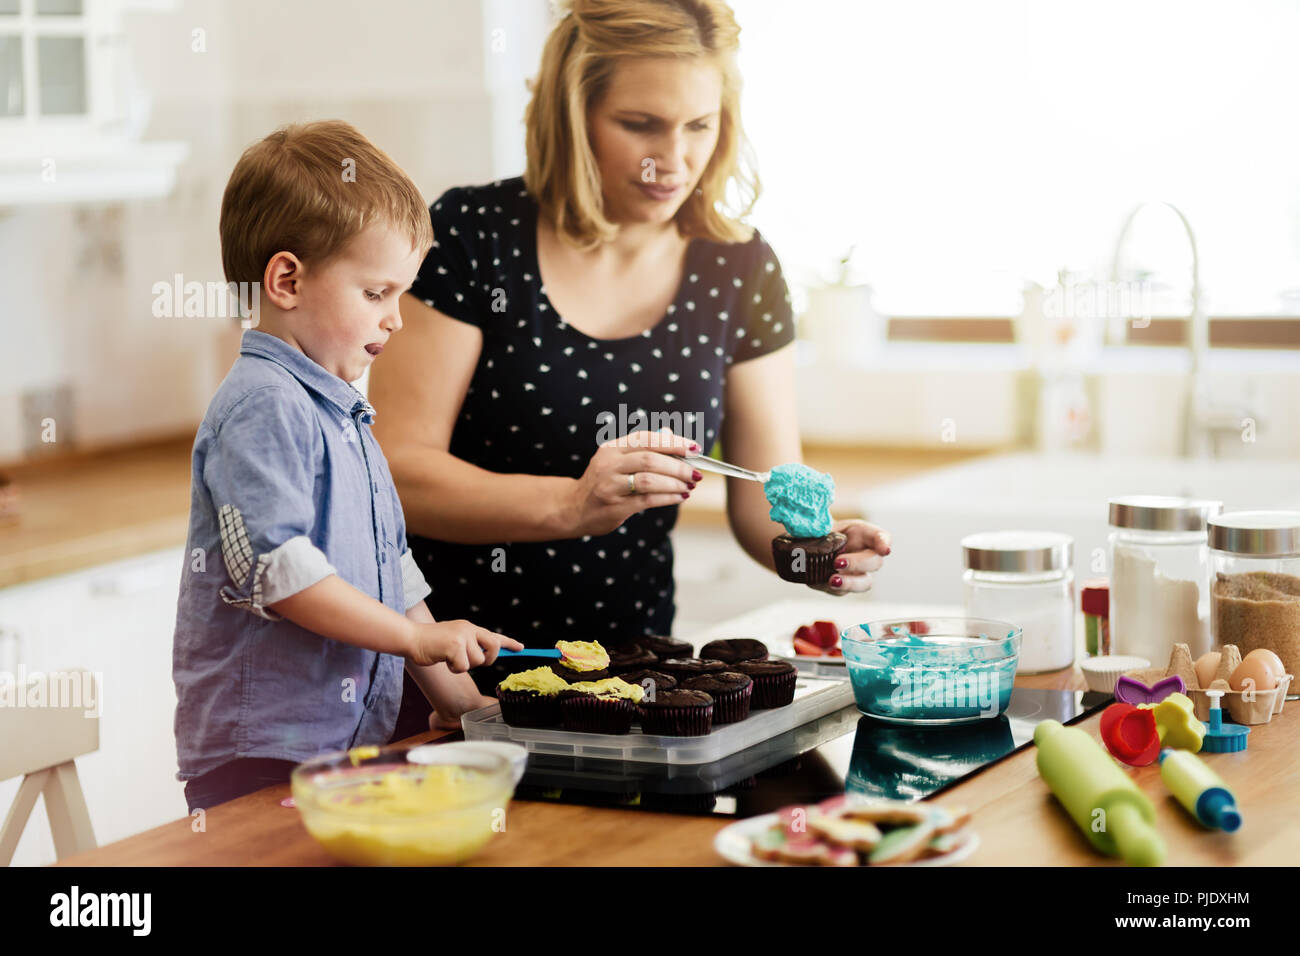 Beautiful child and mother baking - Stock Image